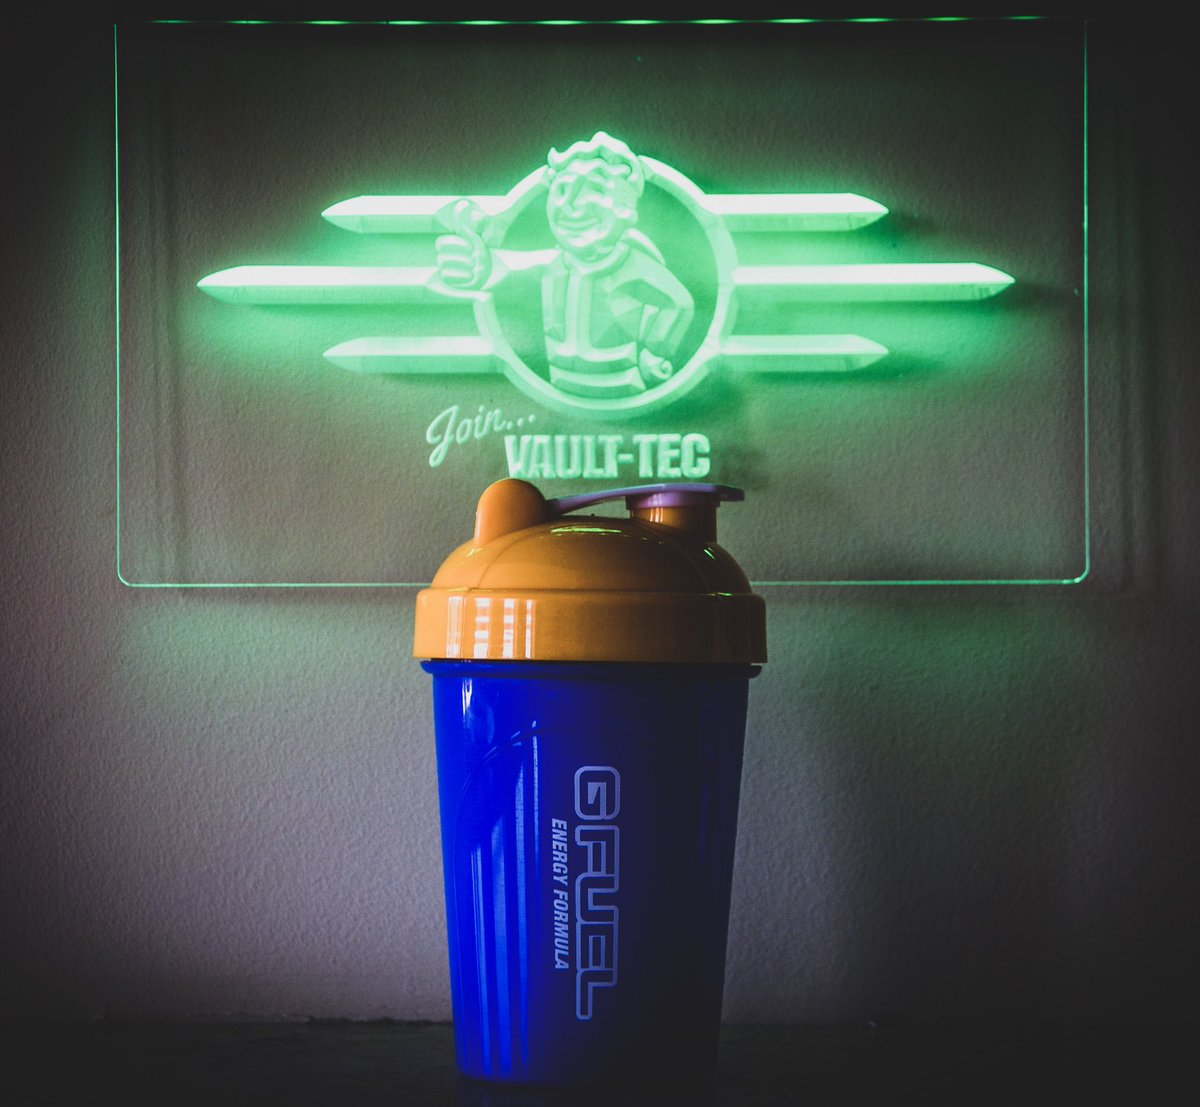 Scrounging the wasteland for stimpaks and purified water right now. Hbu? #GFUEL x #Fallout76 gfuel.ly/2S10QMs 👍